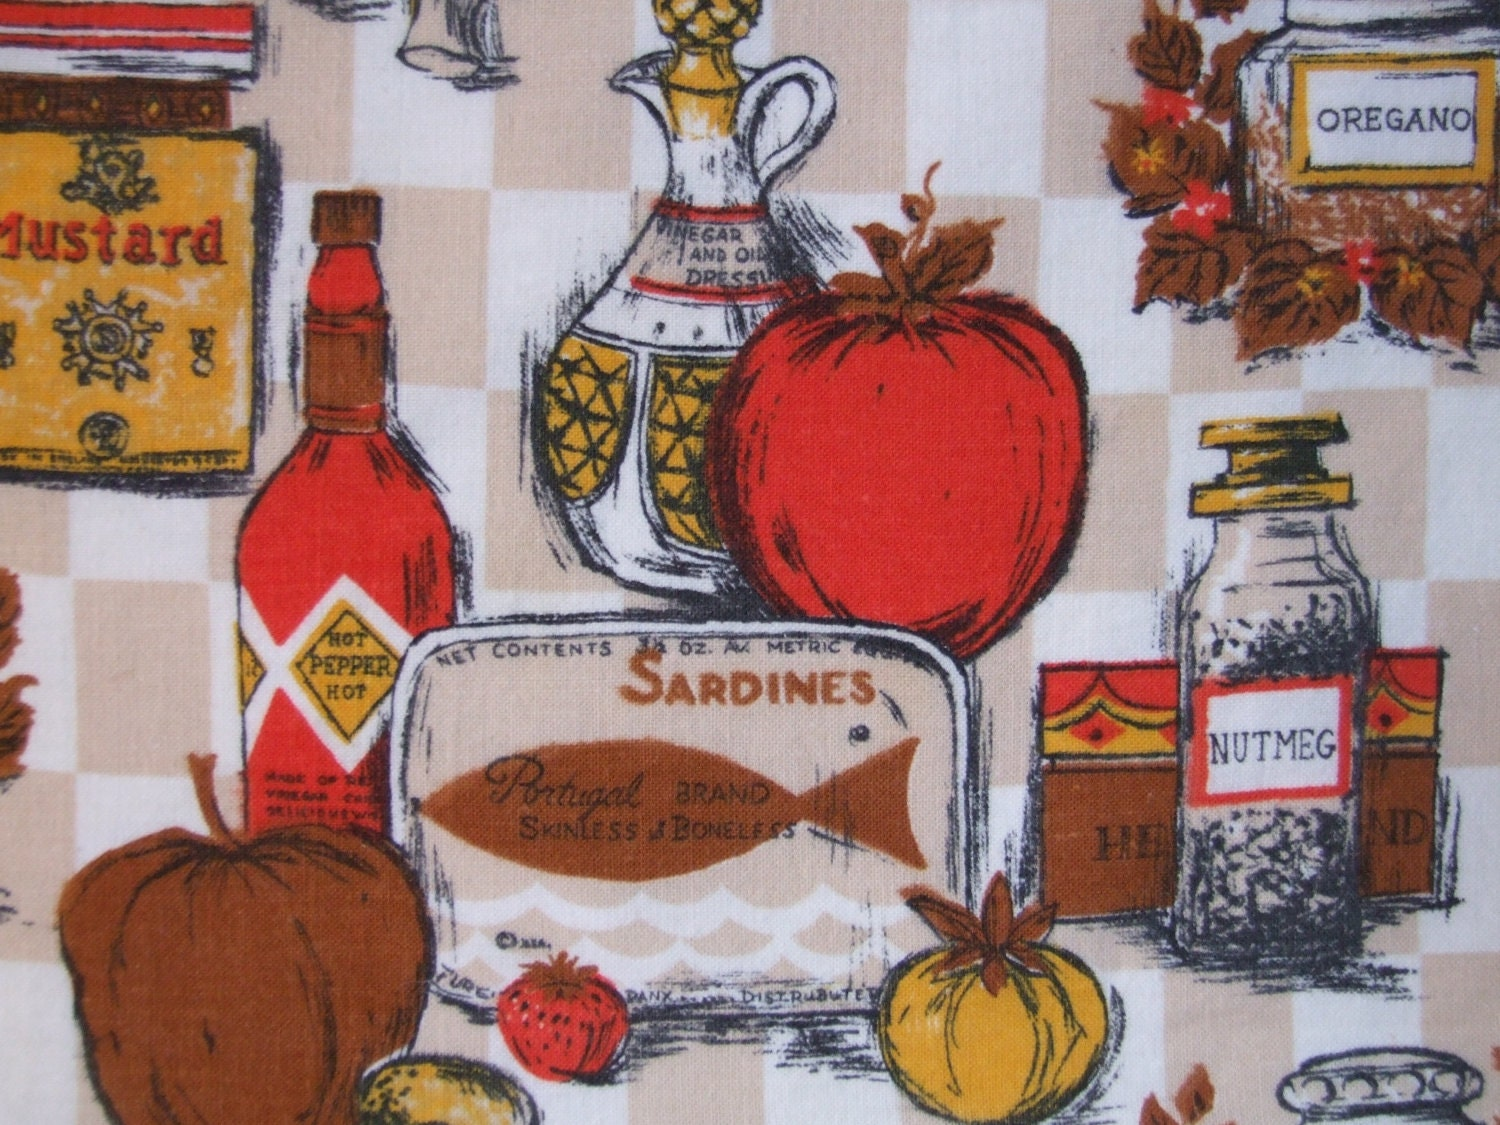 Fabric - Sardines, nutmeg, and oregano